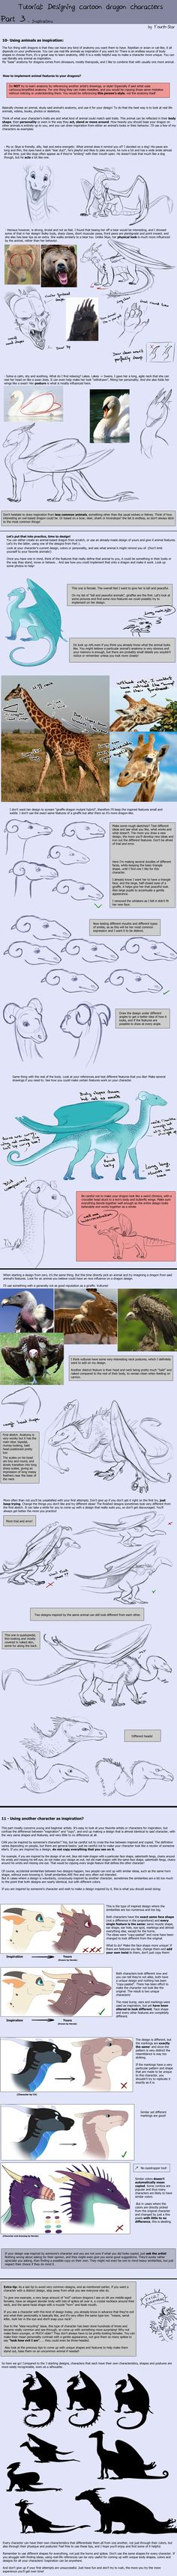 Tutorial: Dragon Designing Tips - part 3/3 by Fourth-Star on DeviantArt